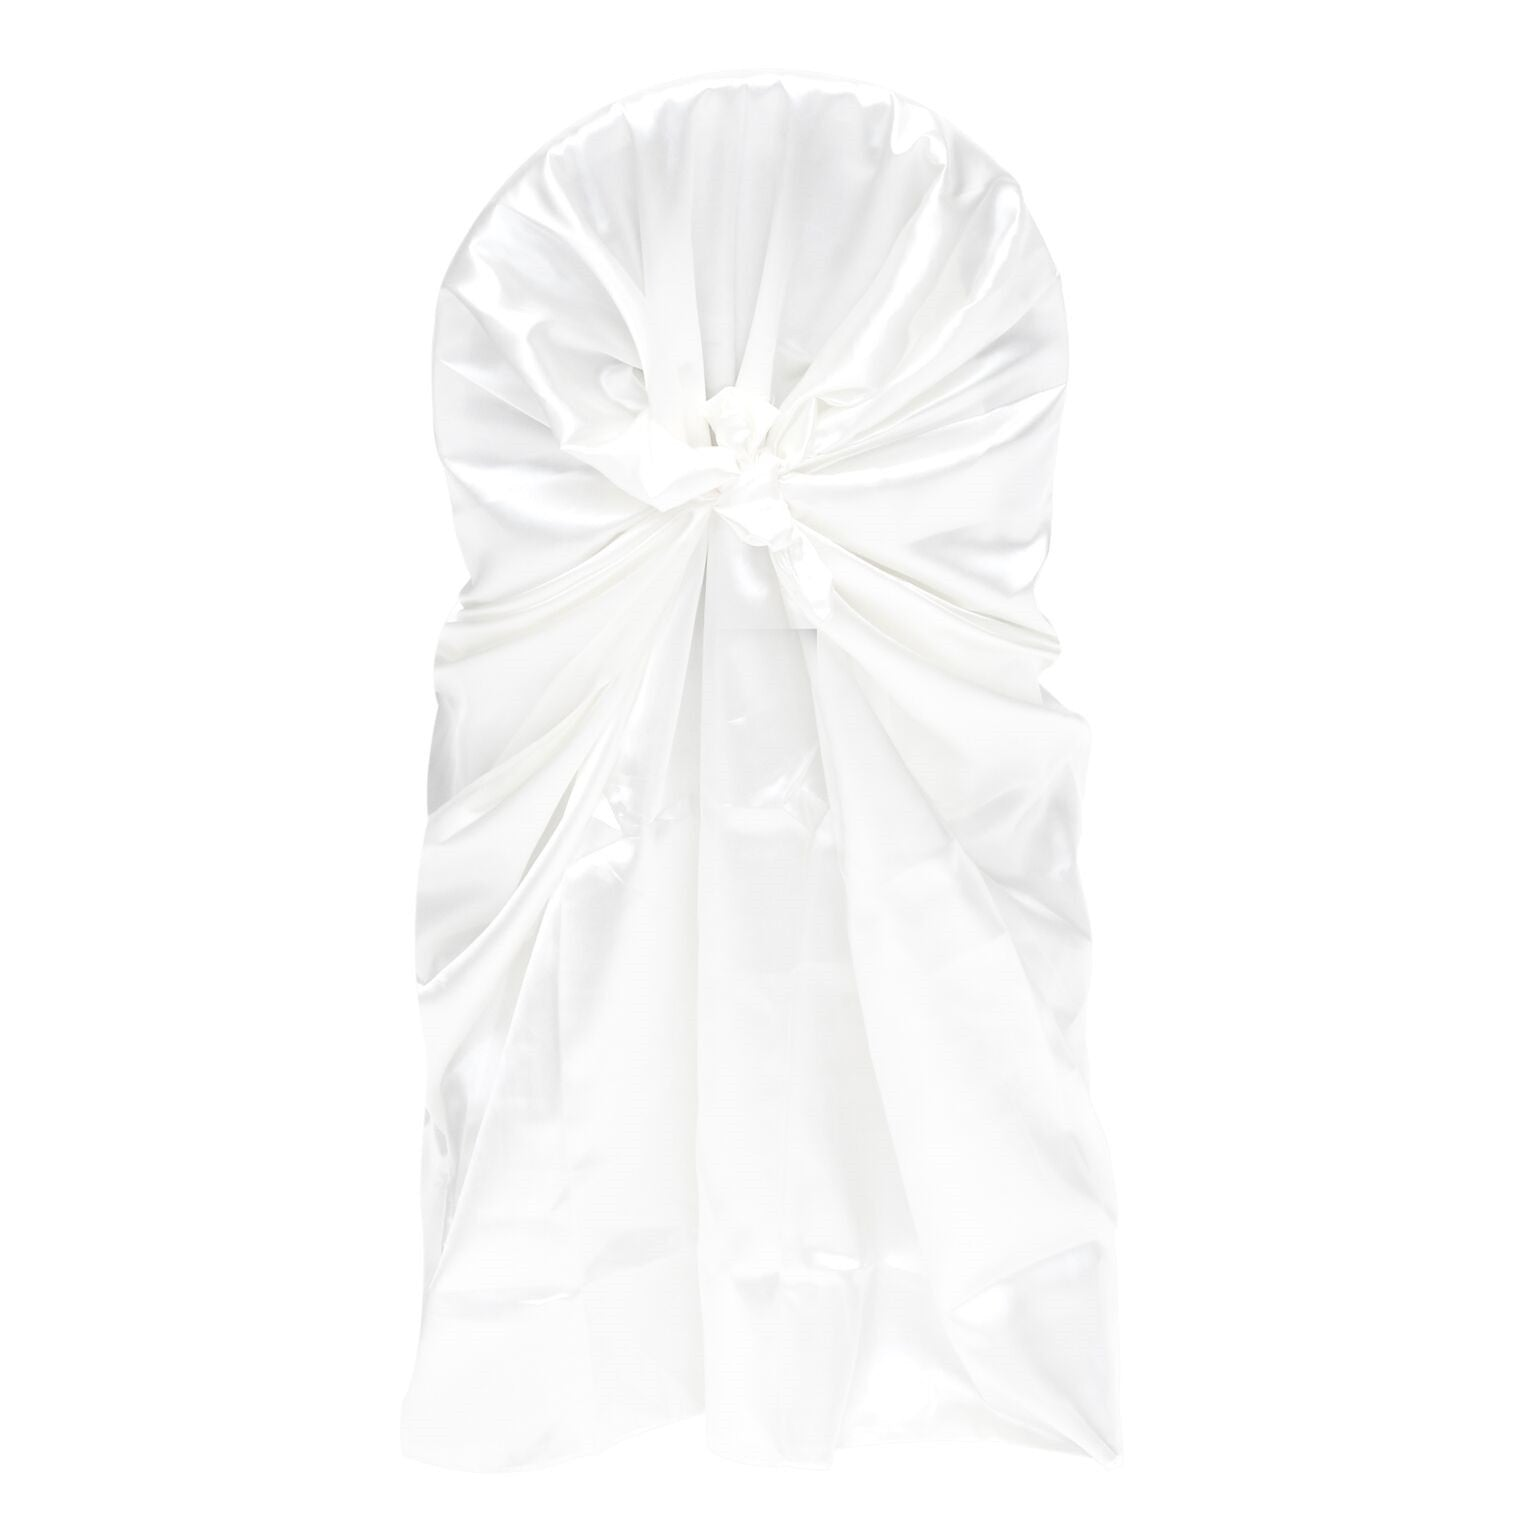 Chair cover Valleytablecloth